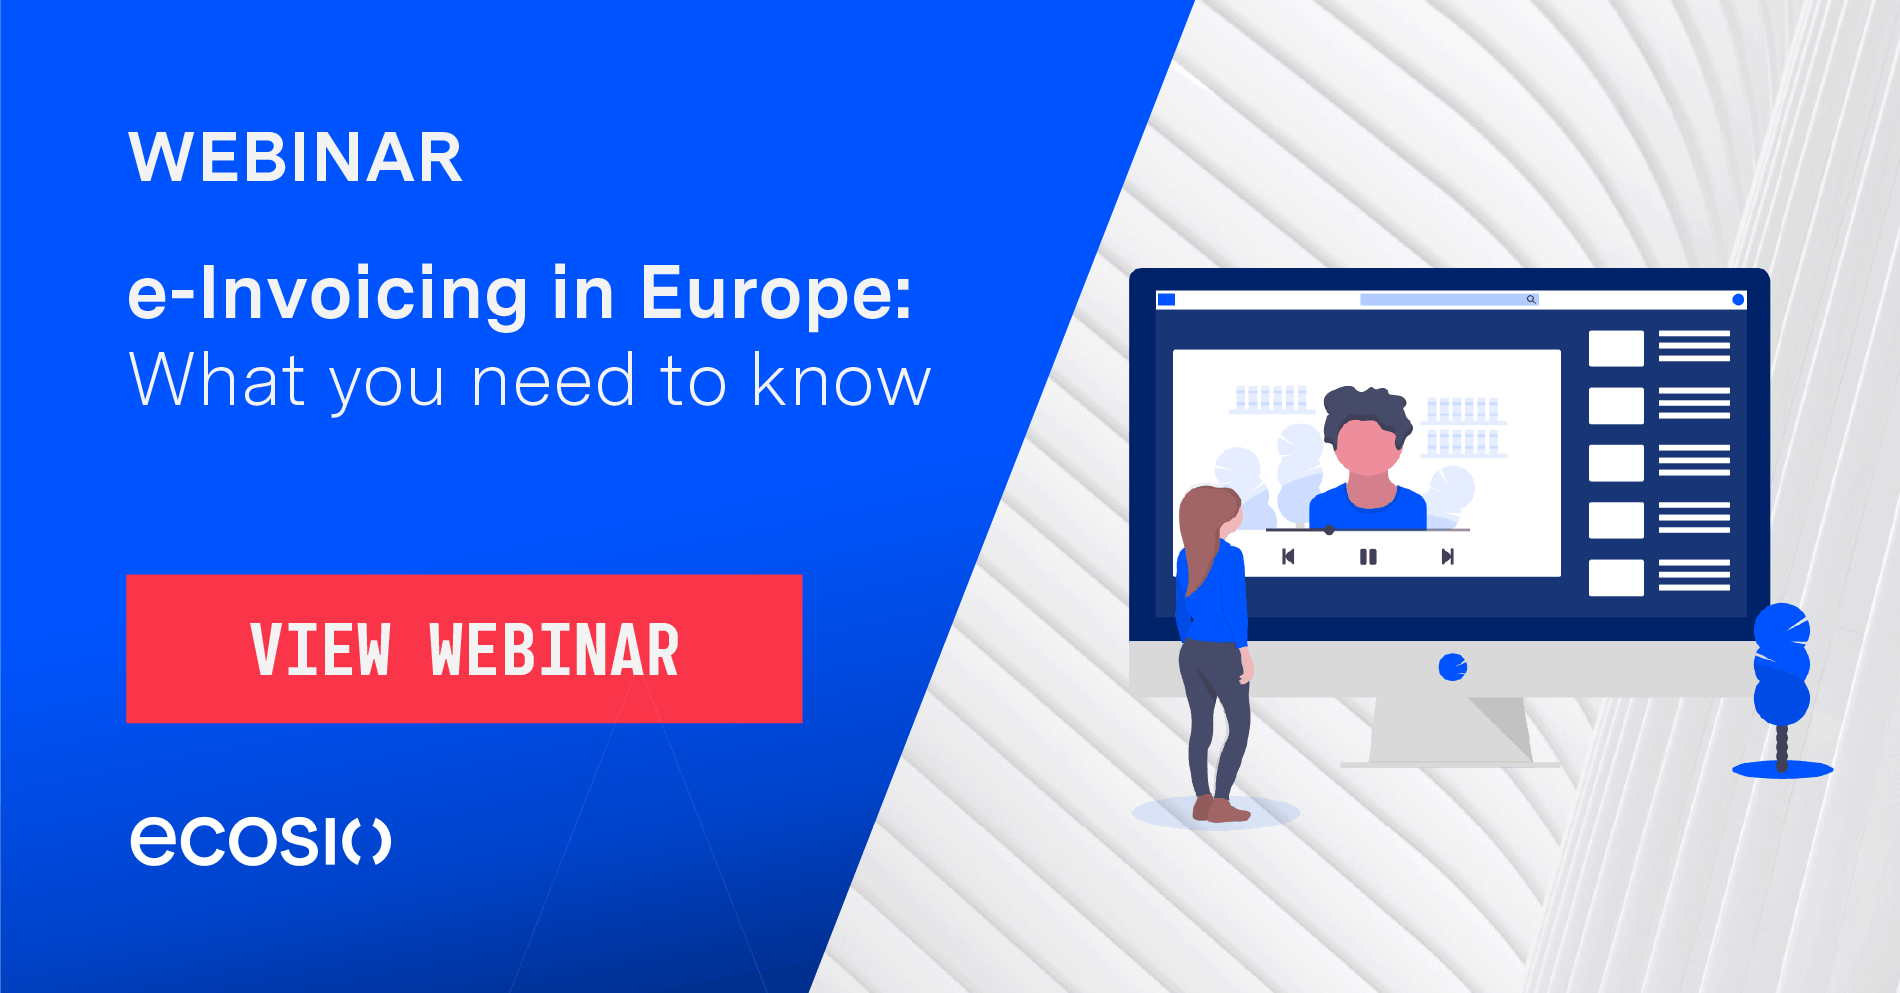 Webinar - e-Invoicing in Europe